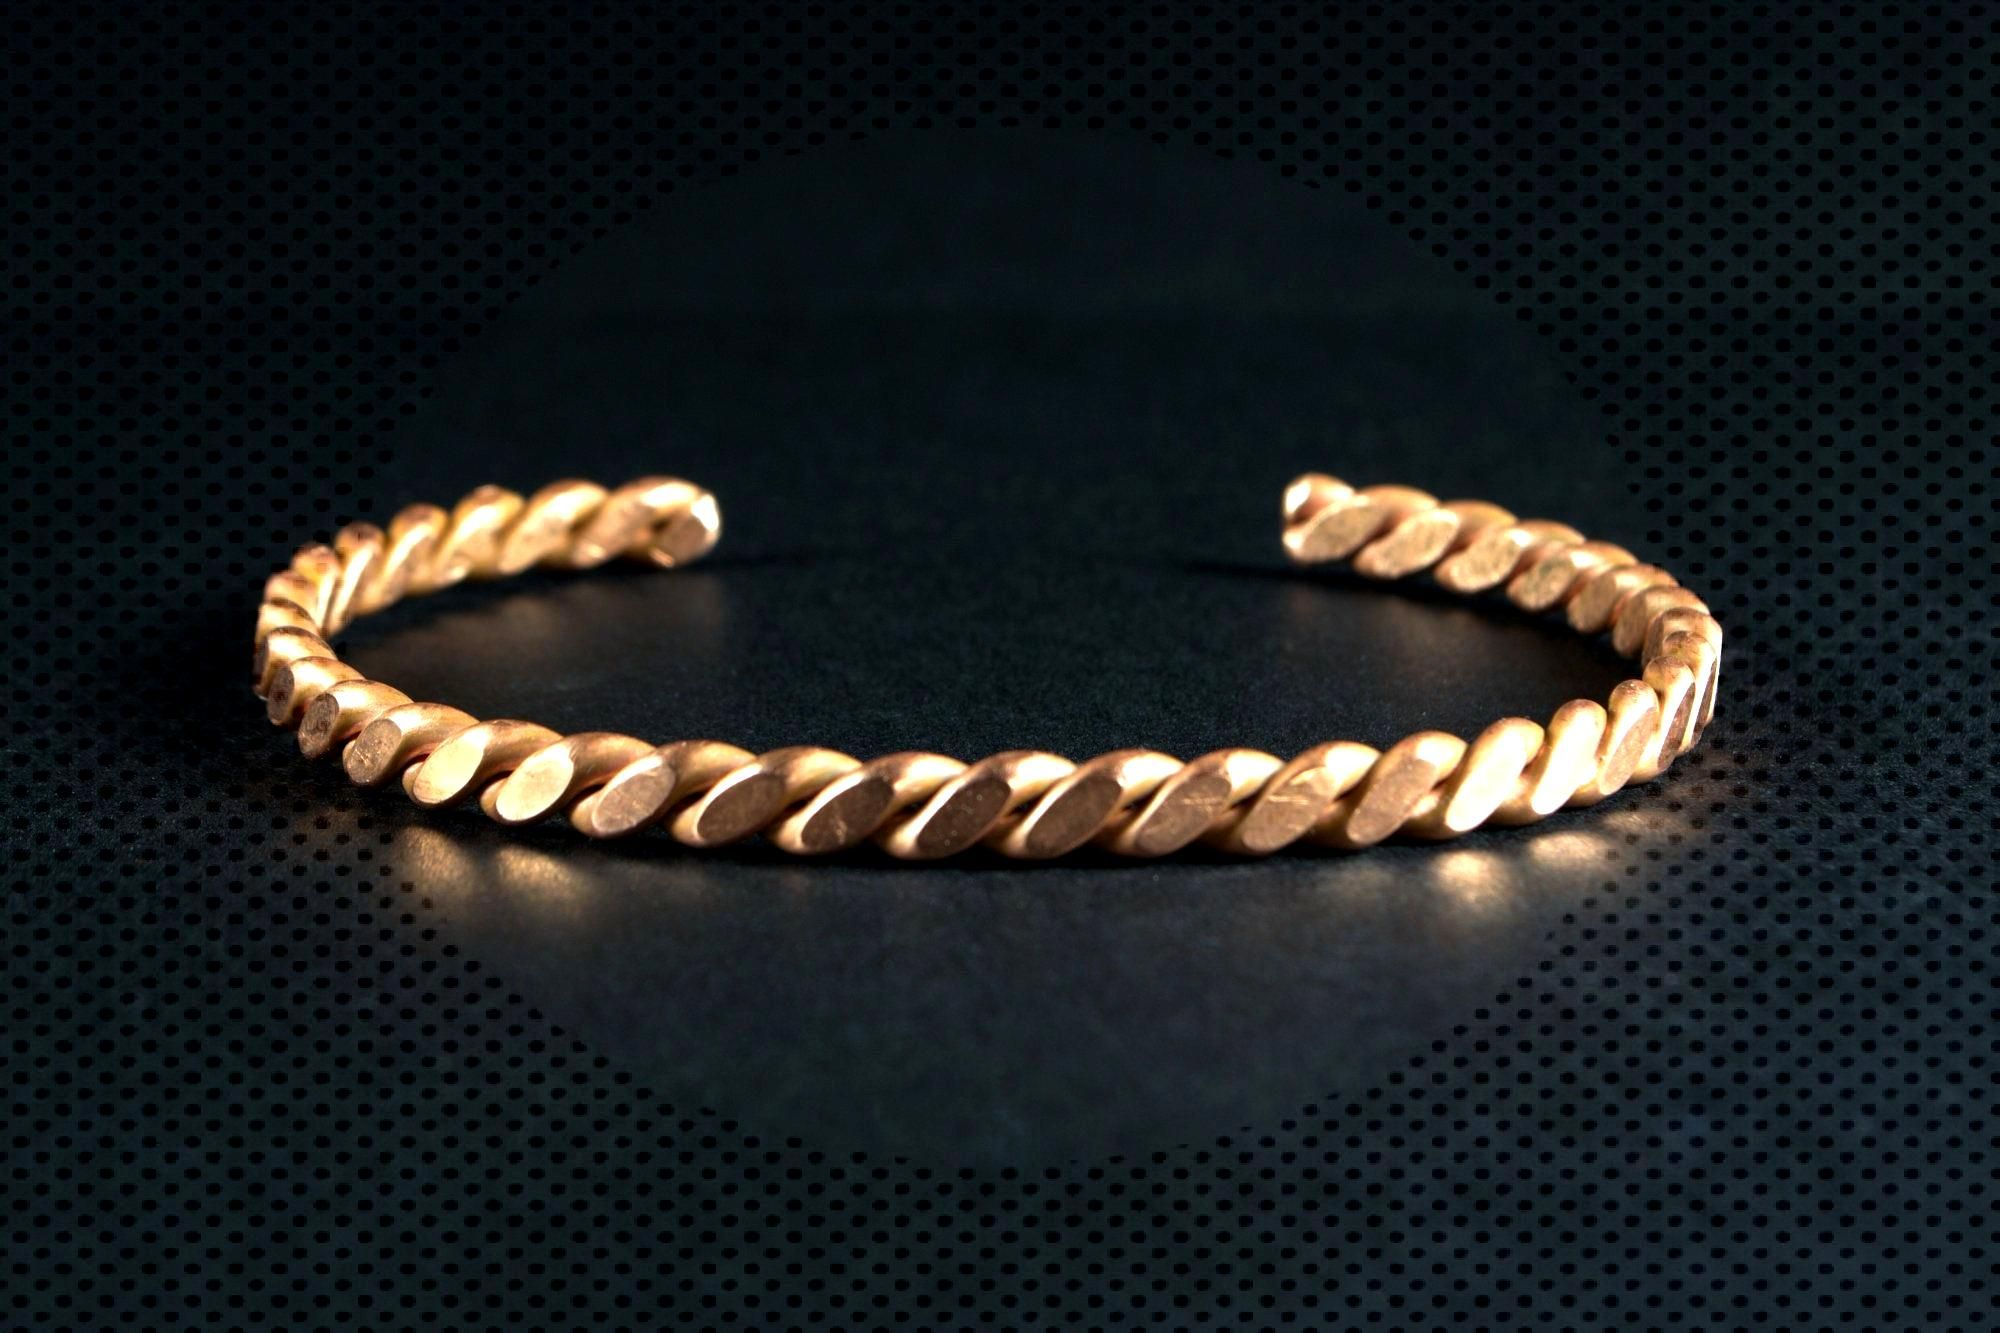 Copper Flat Twist Bracelet: Ancient Timeless Custom made to order Copper Cuff Bracelet by TL Goodwi